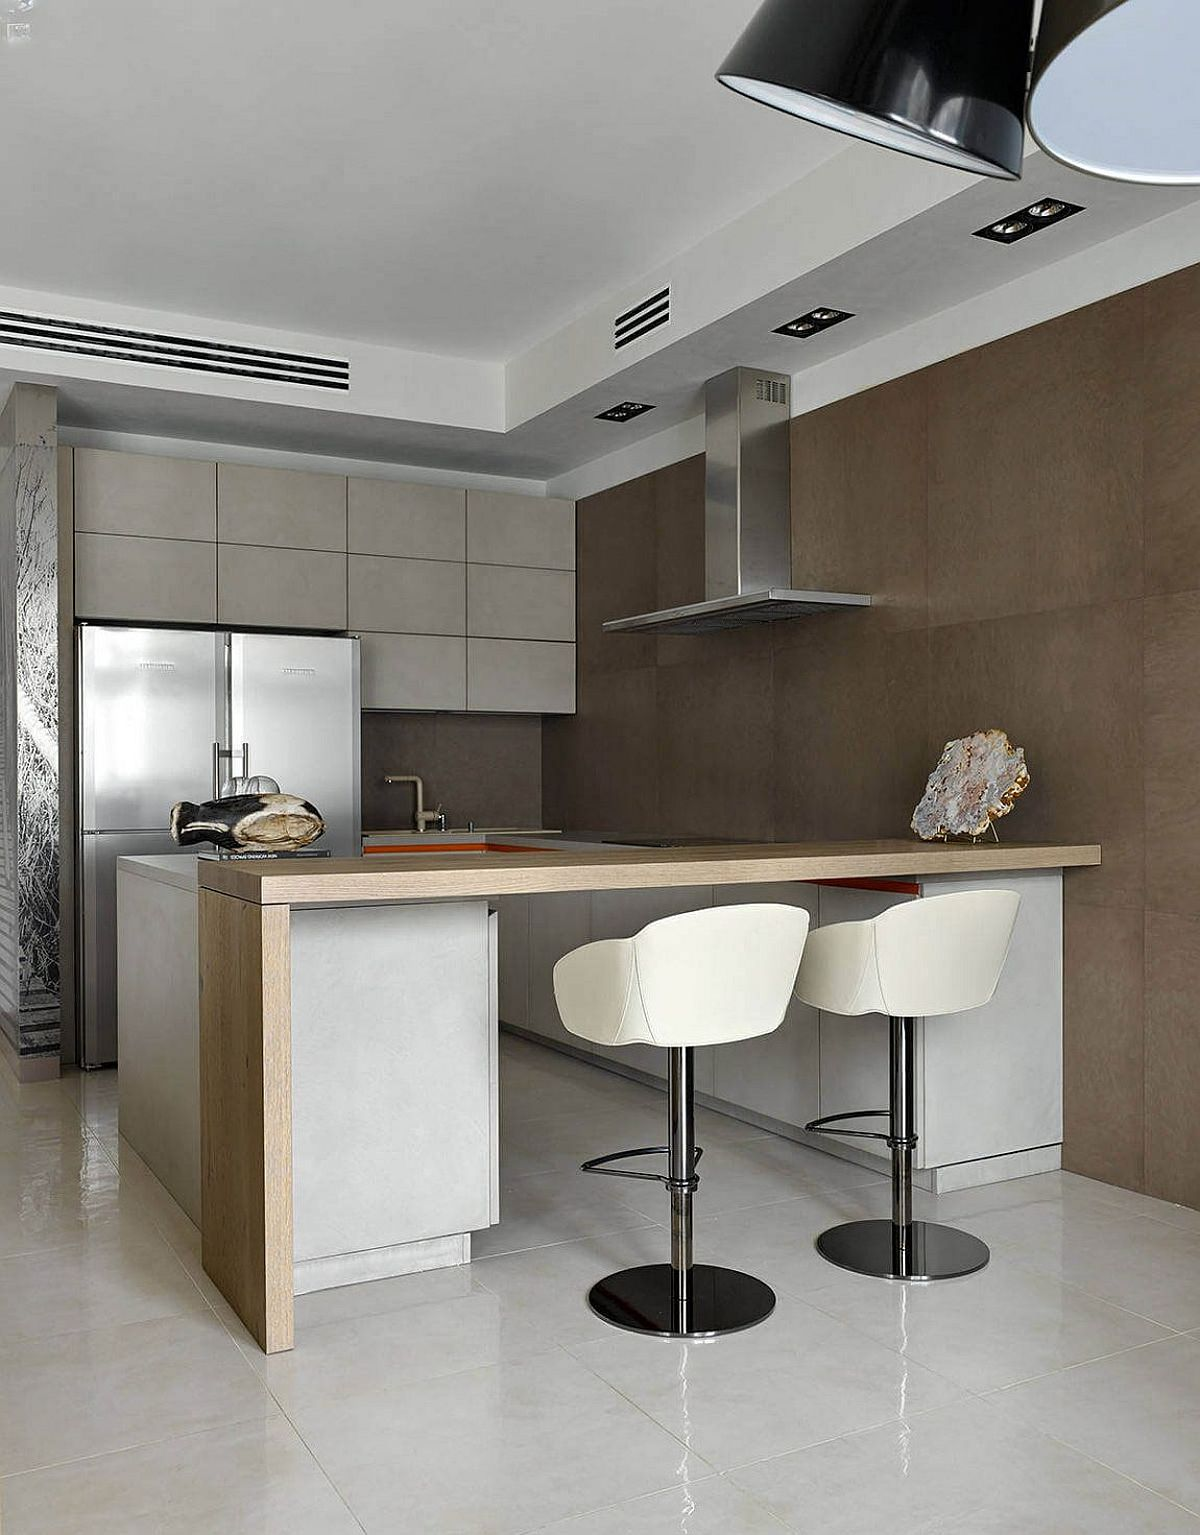 Small kitchen with breakfast bar and space-savvy deisgn